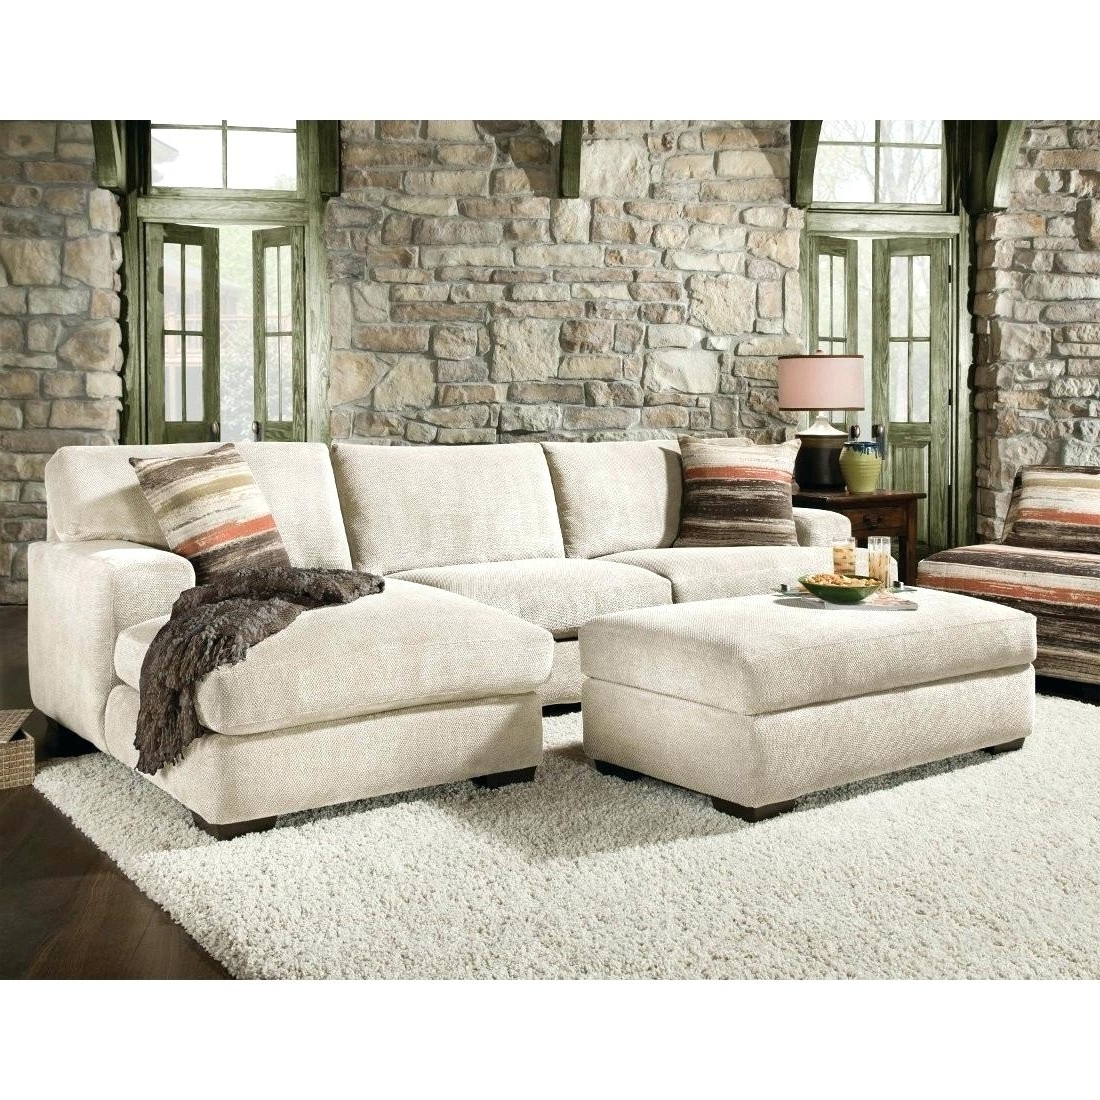 Small Sectional Sofas With Chaise And Ottoman In Famous Small Sectional Sofa With Chaise And Ottoman No (View 13 of 15)